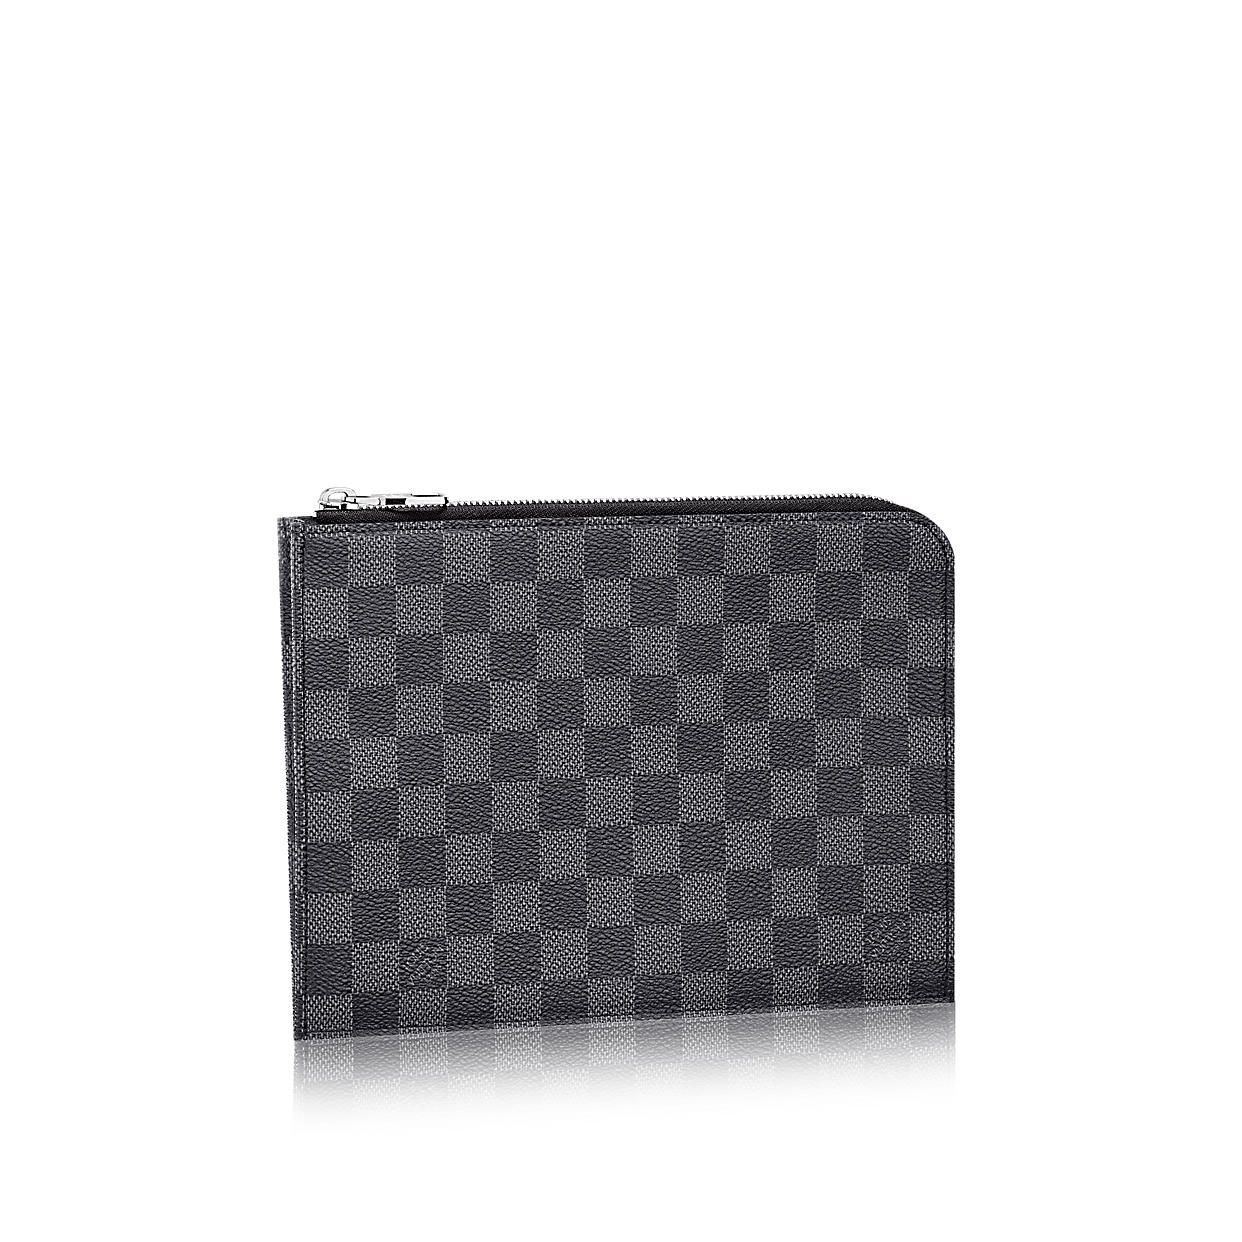 1ad5b9da Pochette Jour PM Damier Graphite Canvas in MEN's BAGS collections by ...